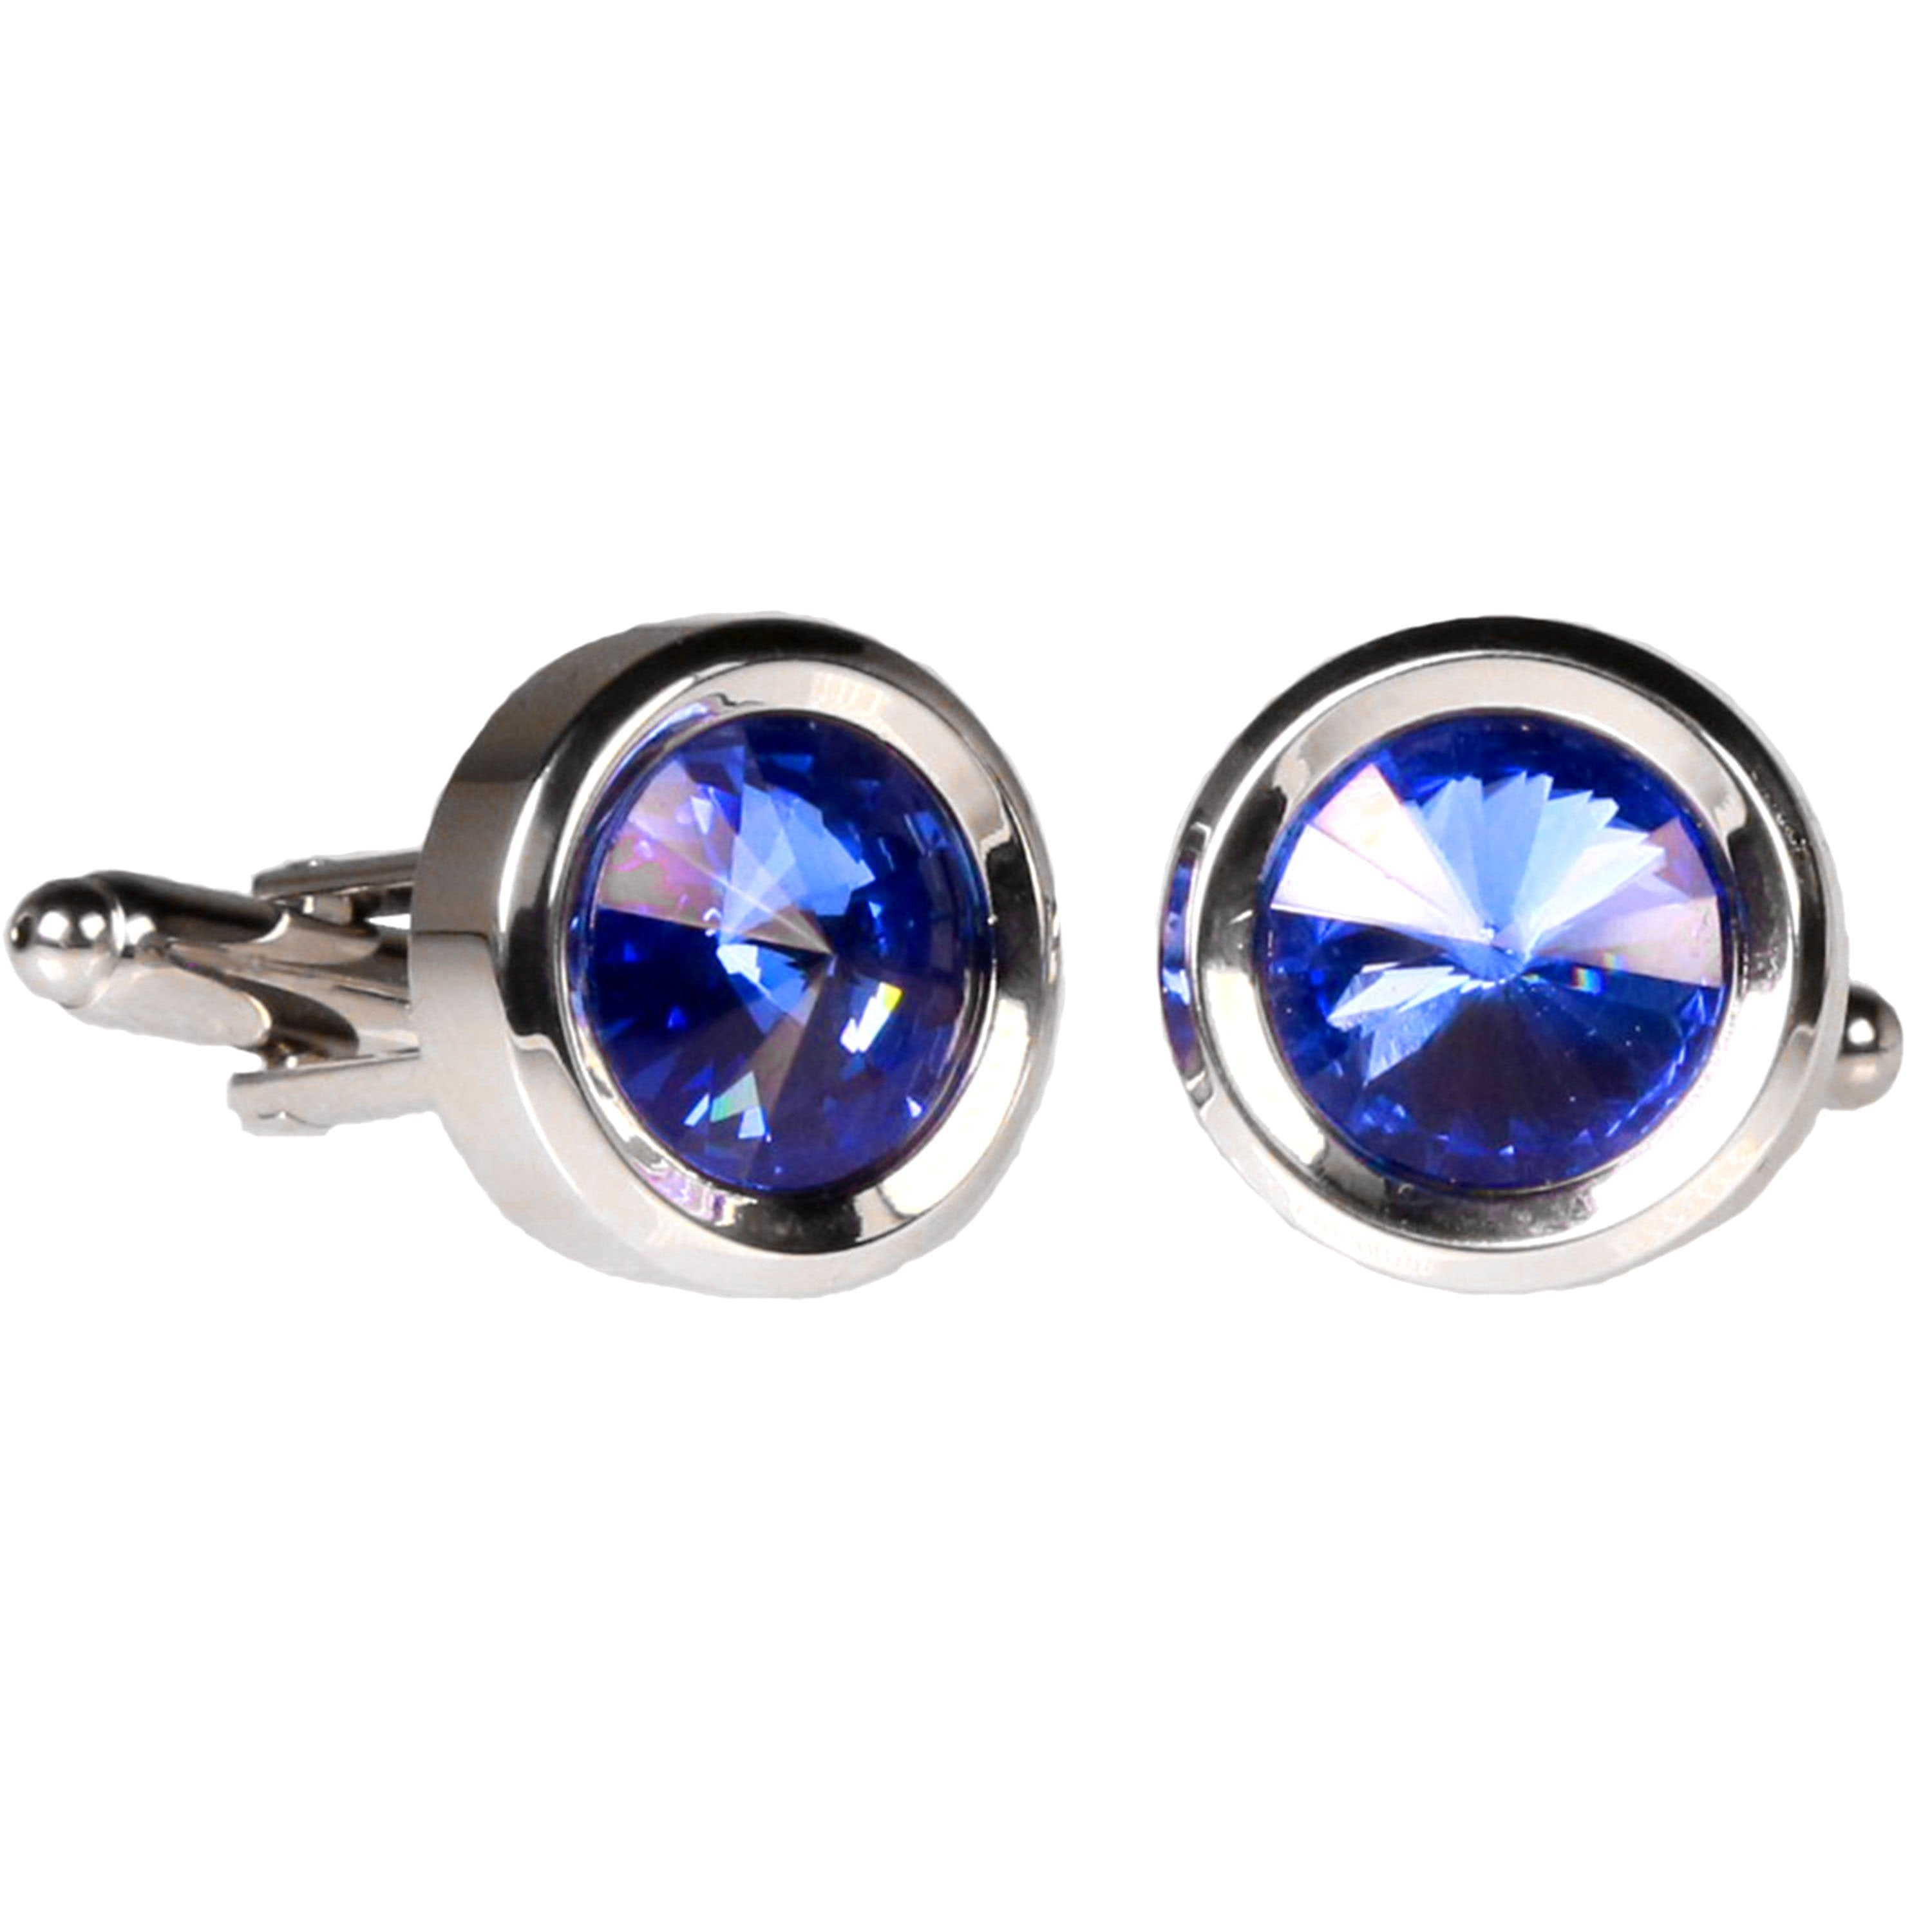 Silvertone Circle Blue Gemstone Cufflinks with Jewelry Box - Giorgio's Menswear